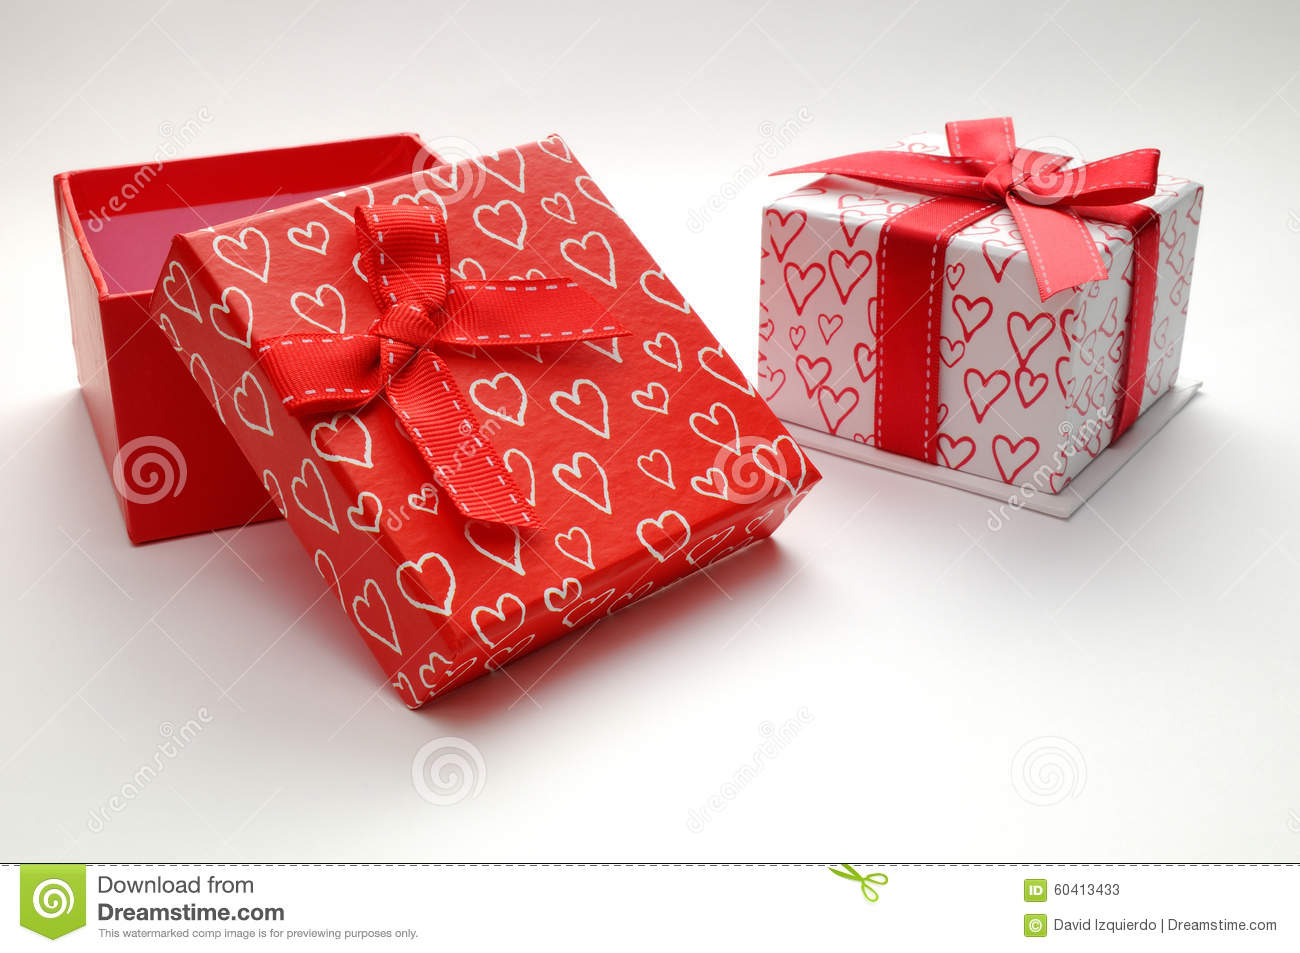 Two decorative gift boxes with hearts printed isolated